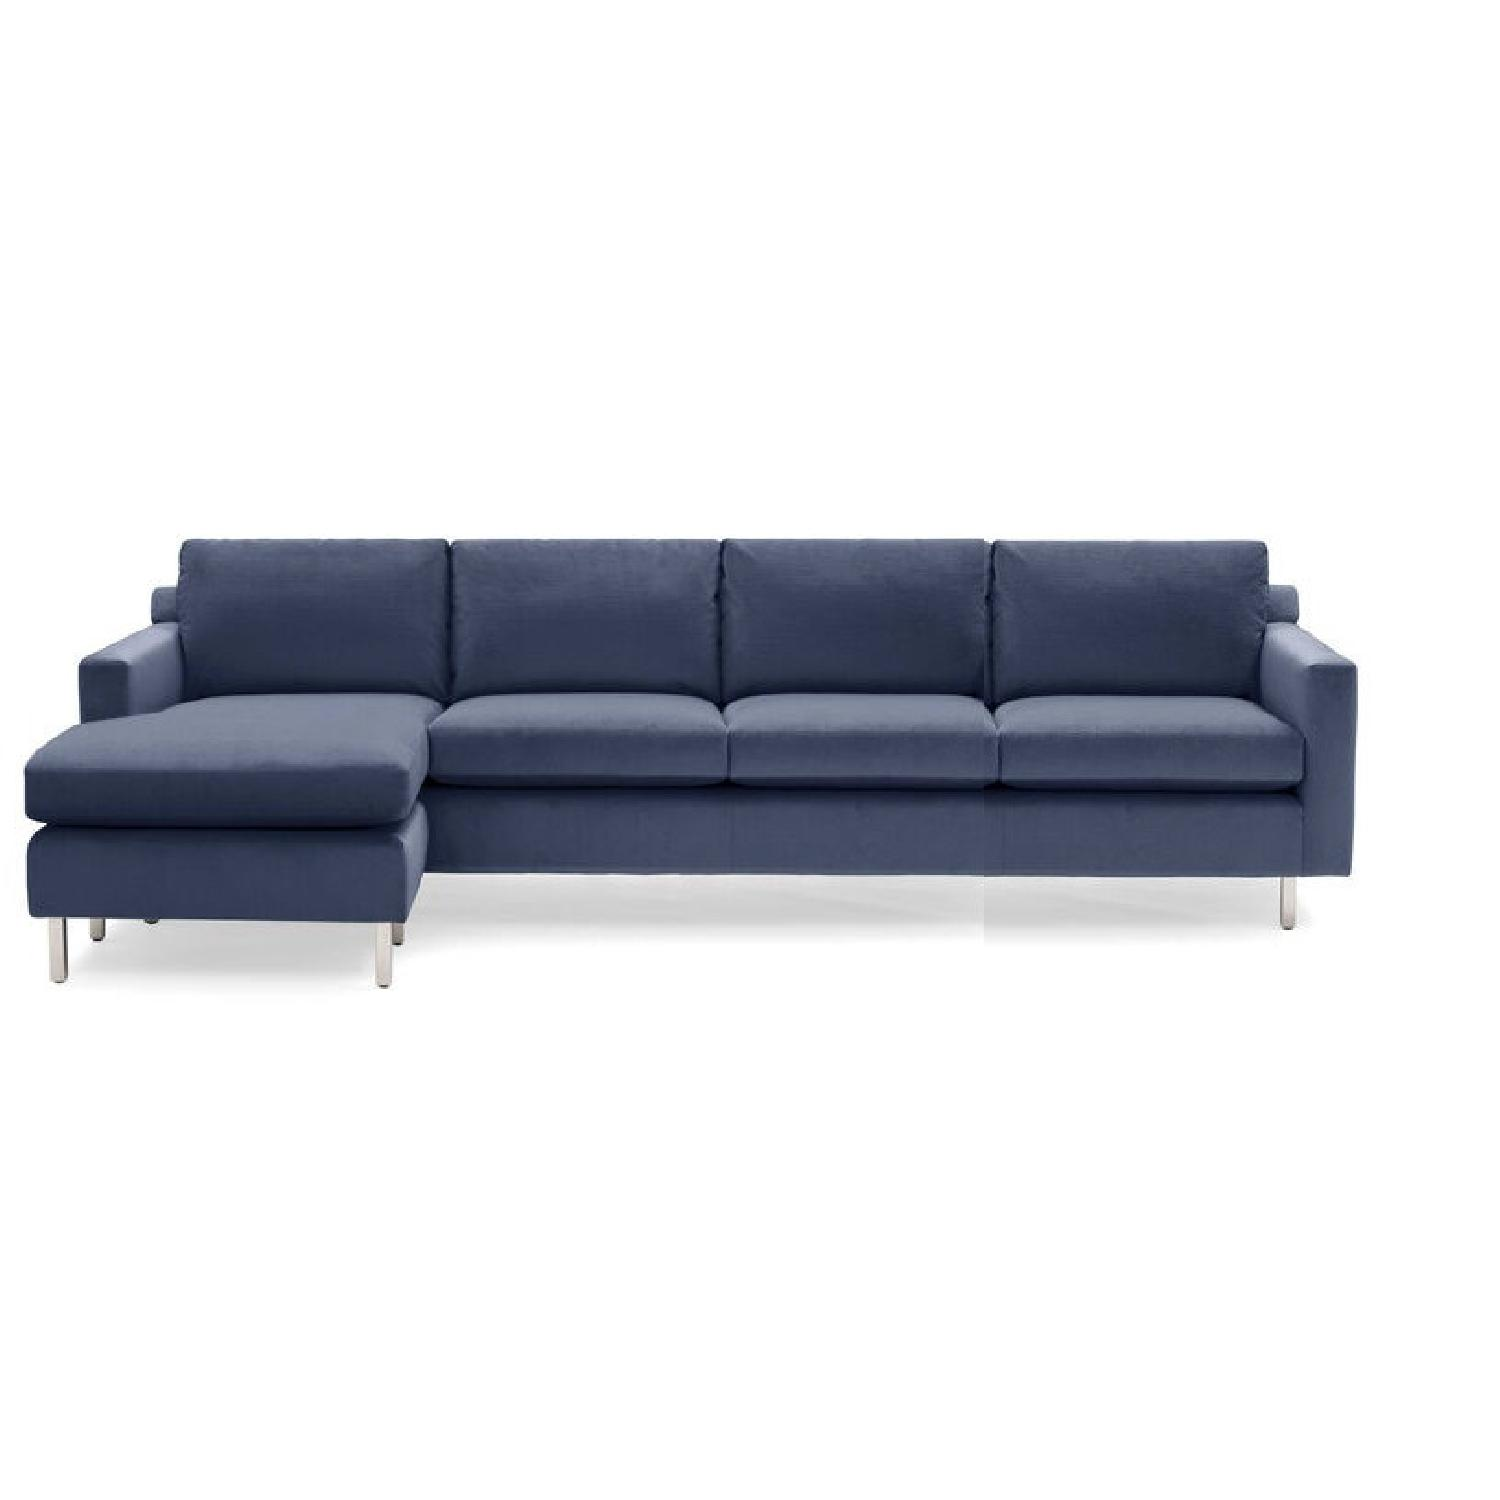 Mitchell Gold + Bob Williams Hunter Sectional Sofa - image-0